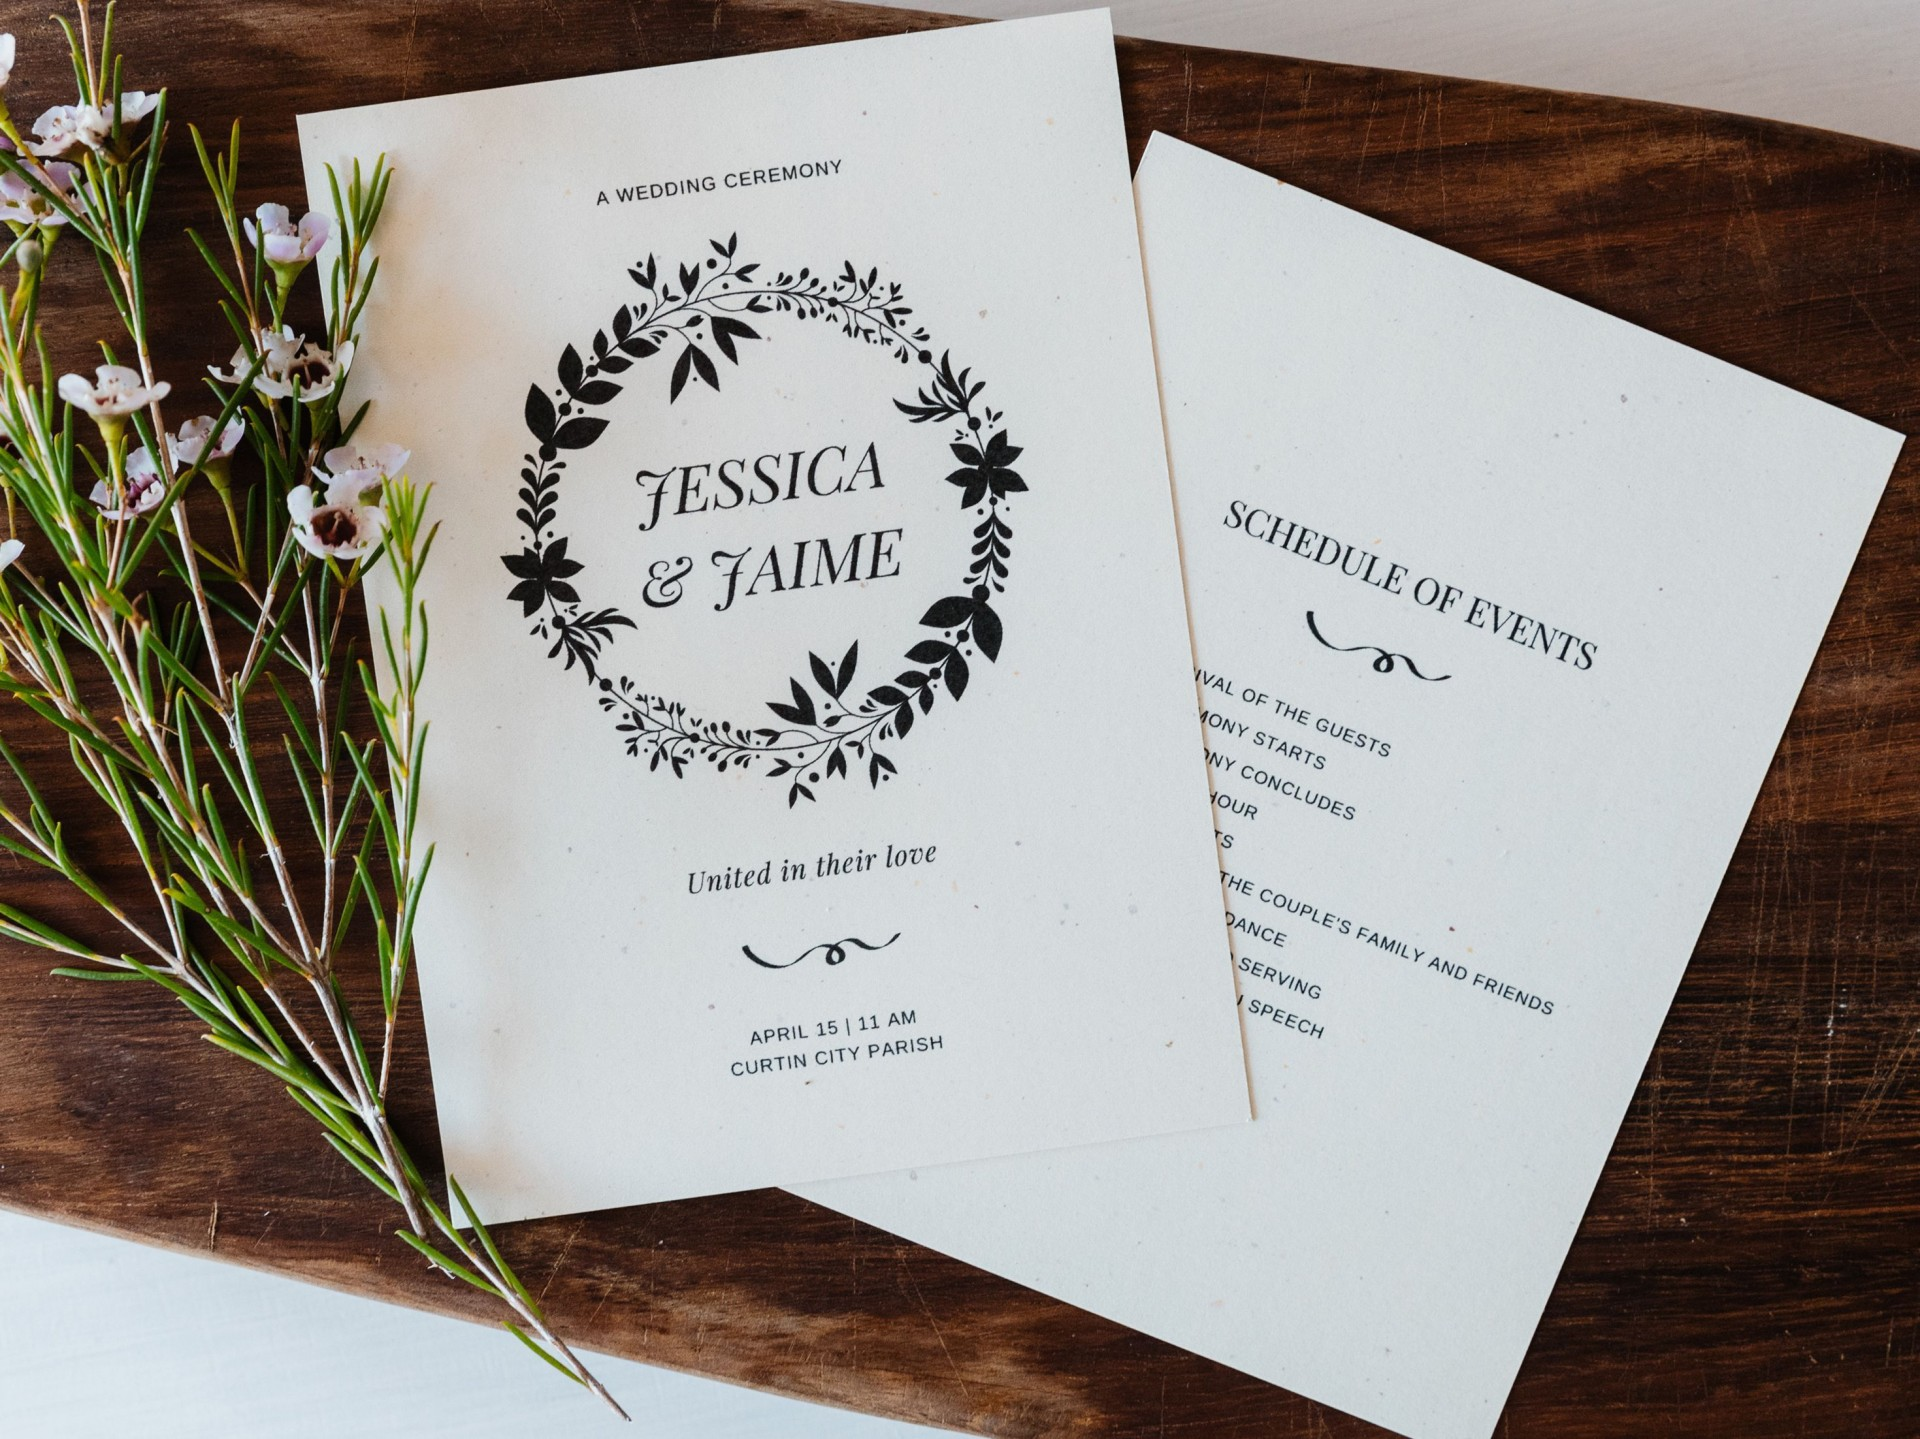 003 Phenomenal Traditional Wedding Order Of Service Template Uk High Resolution 1920